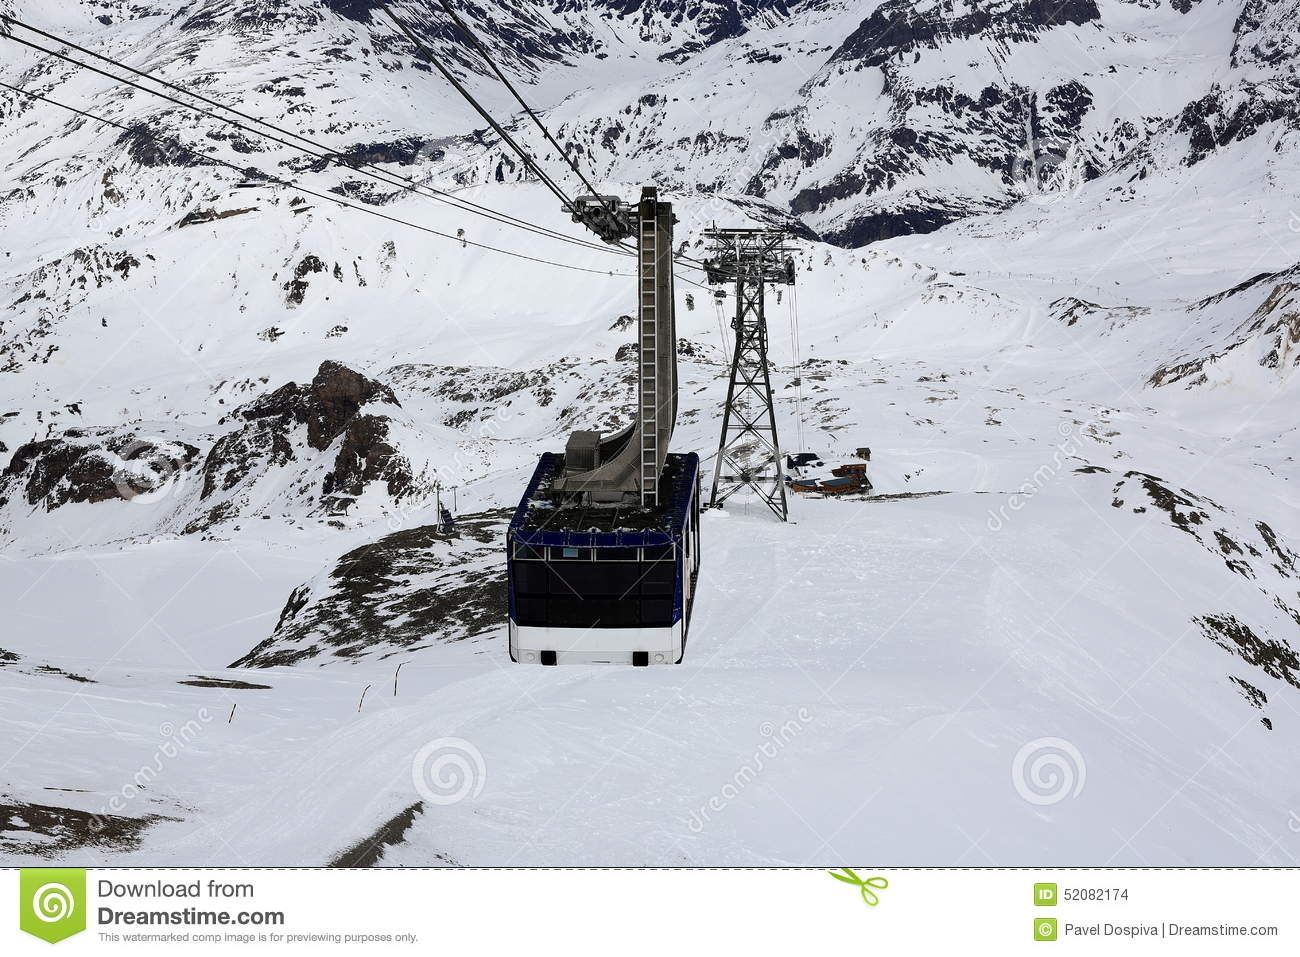 La Grande Motte, Winter Ski Resort Of Tignes.